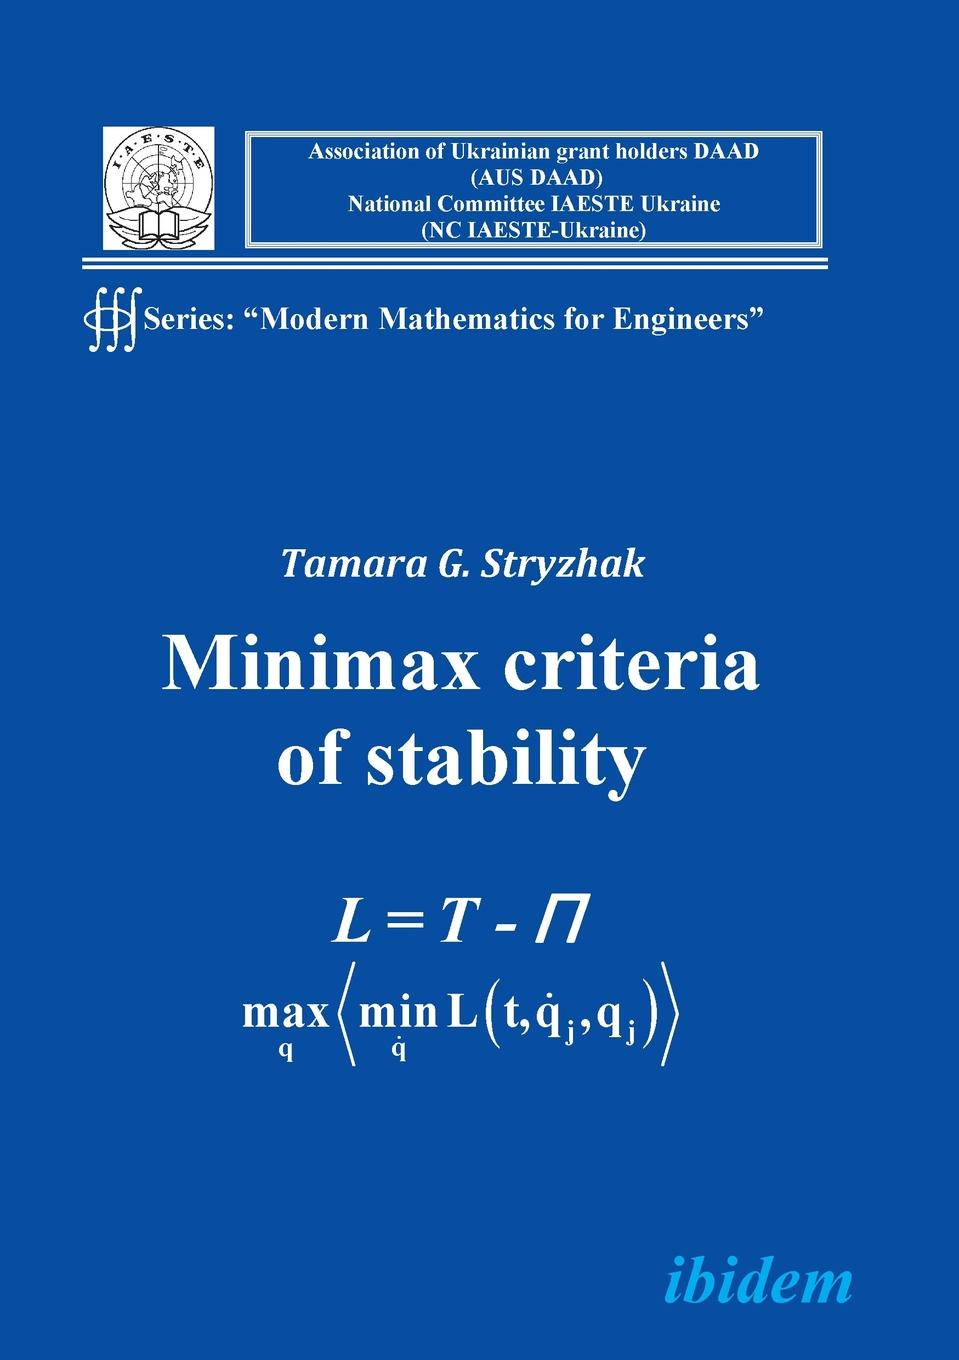 Tamara G Stryzhak Modern Mathematics for Engineers I. The Minimax Criterion for Stability tool for enhancement of protein stability